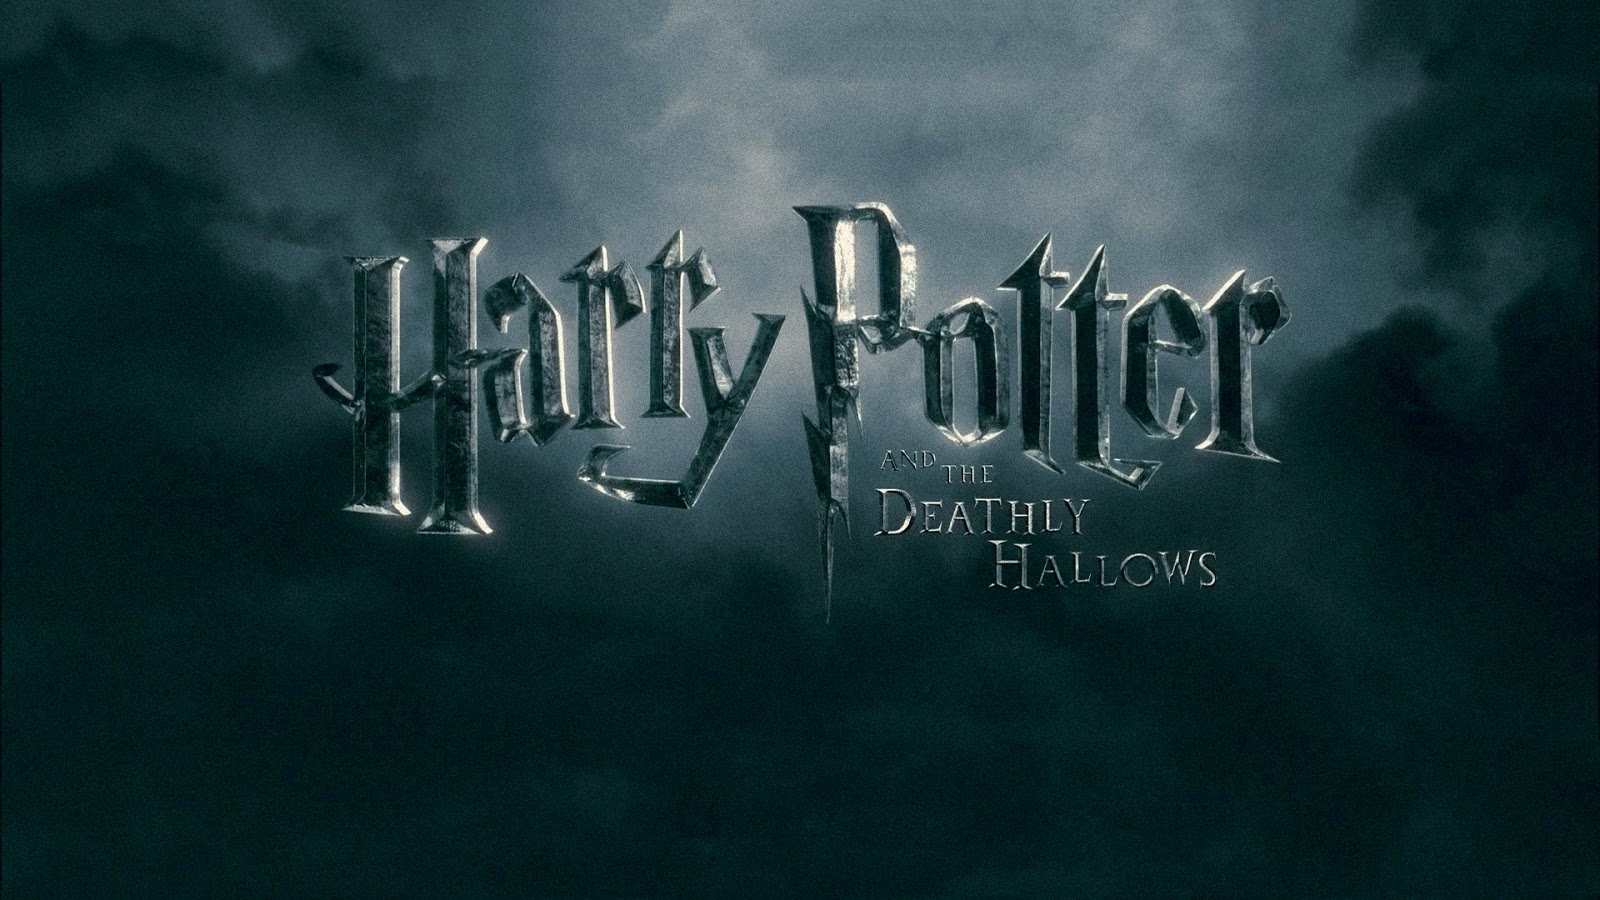 Download Wallpaper Harry Potter 1080p - Harry-potter-and-the-deatlhy-hallows  Snapshot_475858.jpg